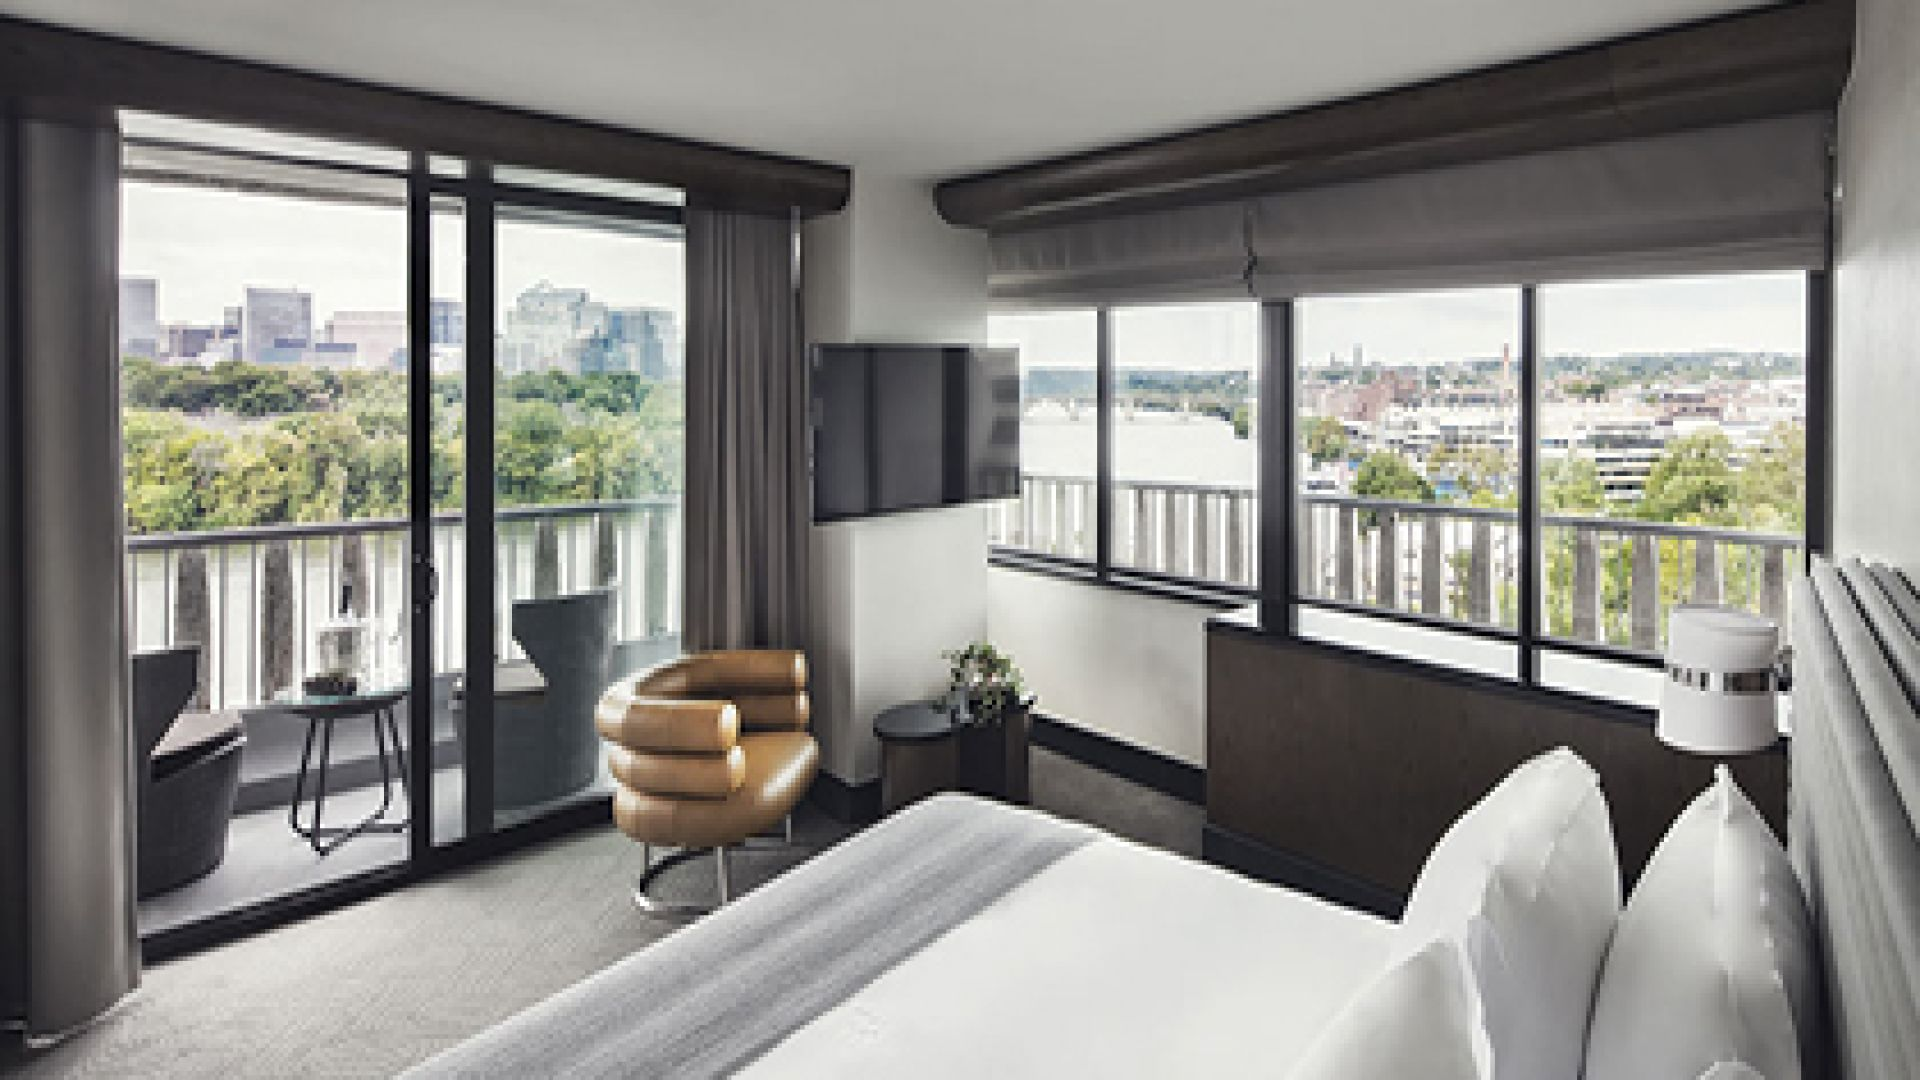 Dc Luxury Hotel Rooms And Suites The Watergate Hotel